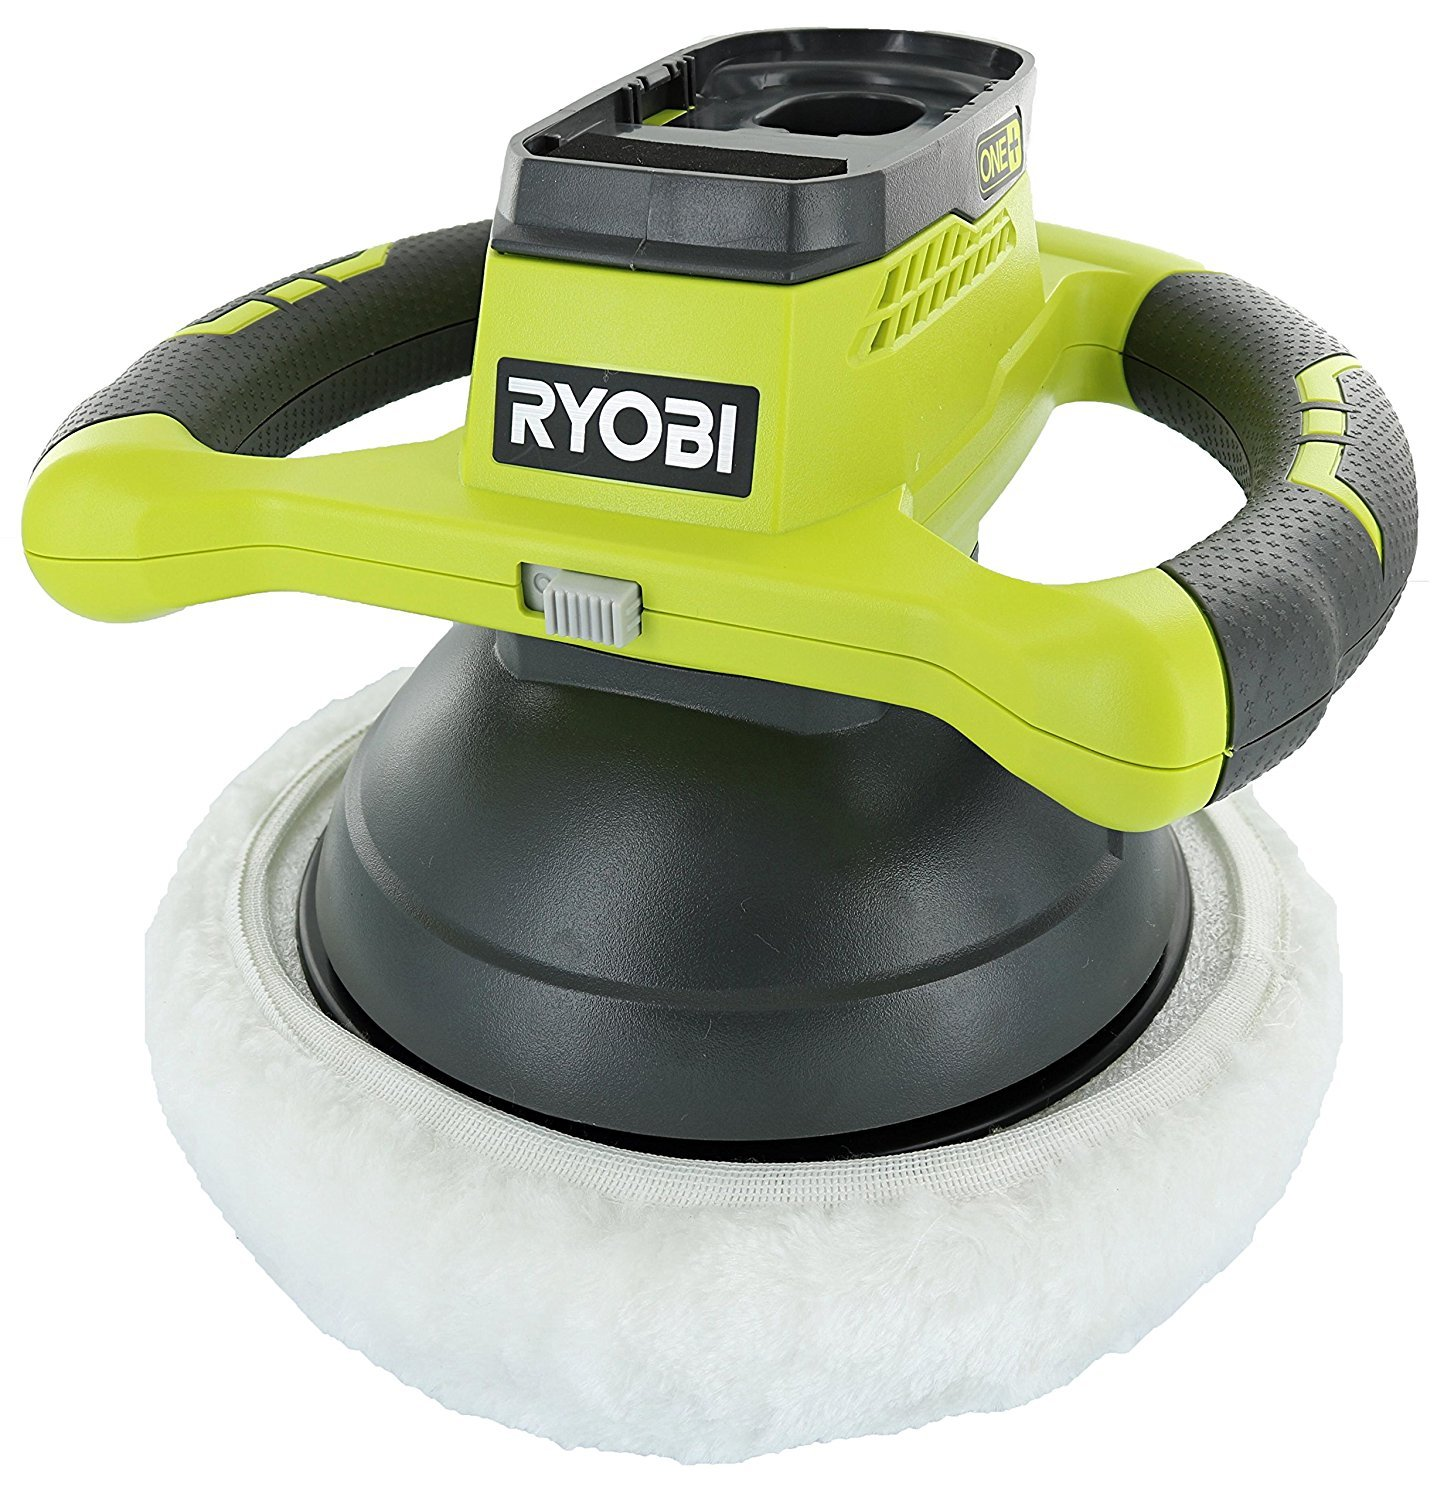 Ryobi P435 One+ 18V Lithium Ion 10'' 2500 RPM Cordless Orbital Buffer/Polisher with 2 Bonnets (Battery Not Included, Power Tool Only) by Ryobi